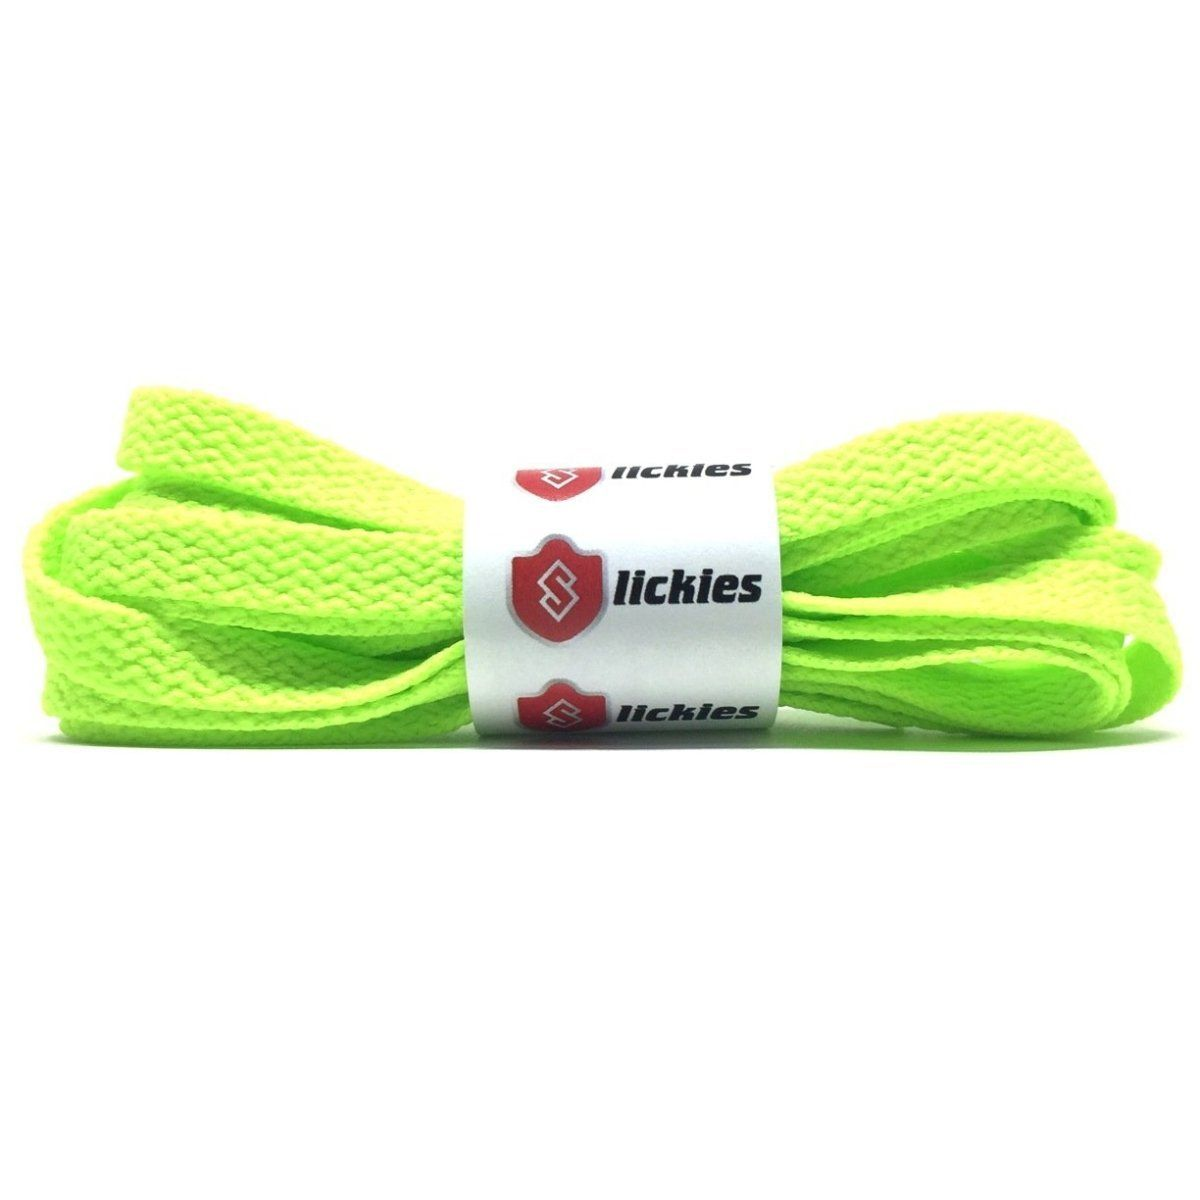 Flat Thin - BASICS Flat Thin Laces - Neon Green